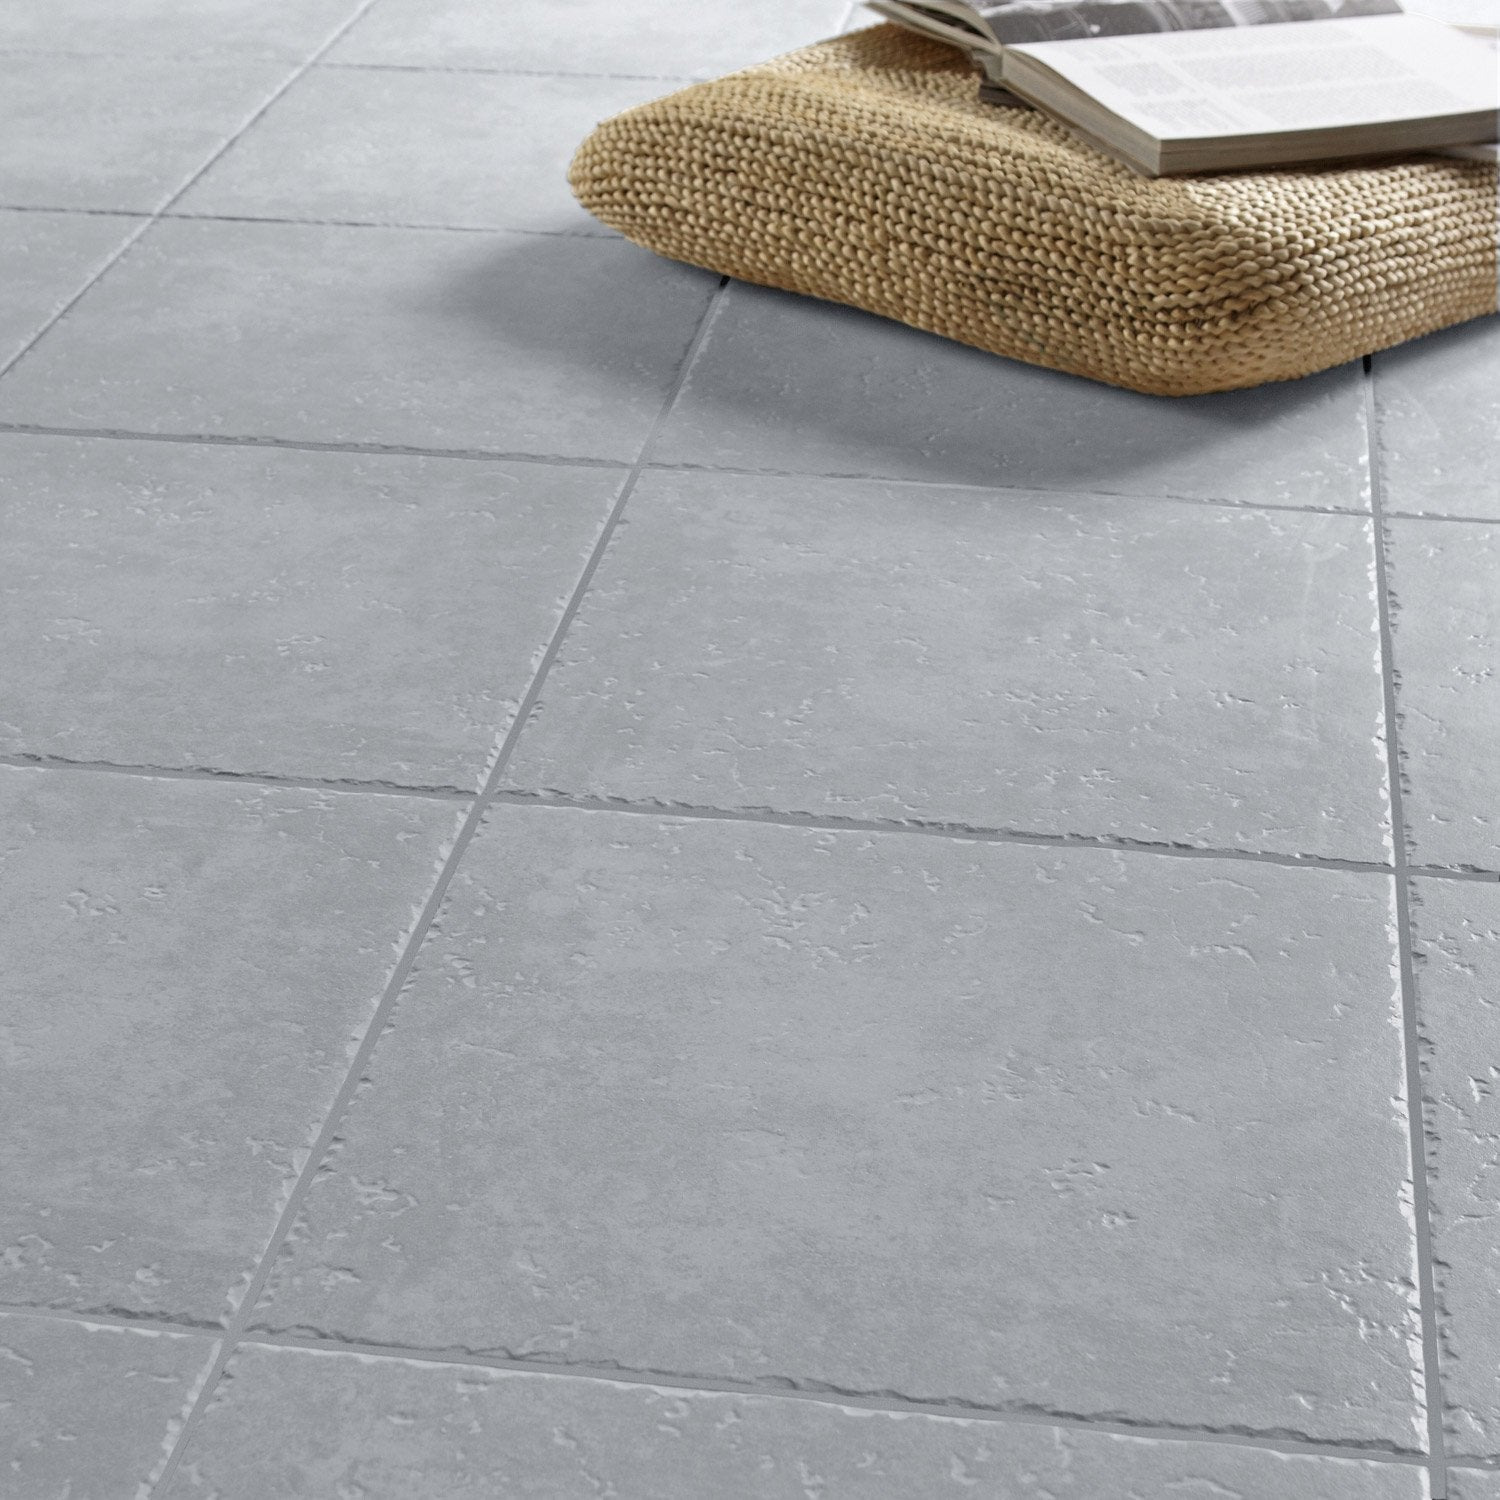 Carrelage sol gris effet pierre michigan x cm for Carrelage gris leroy merlin